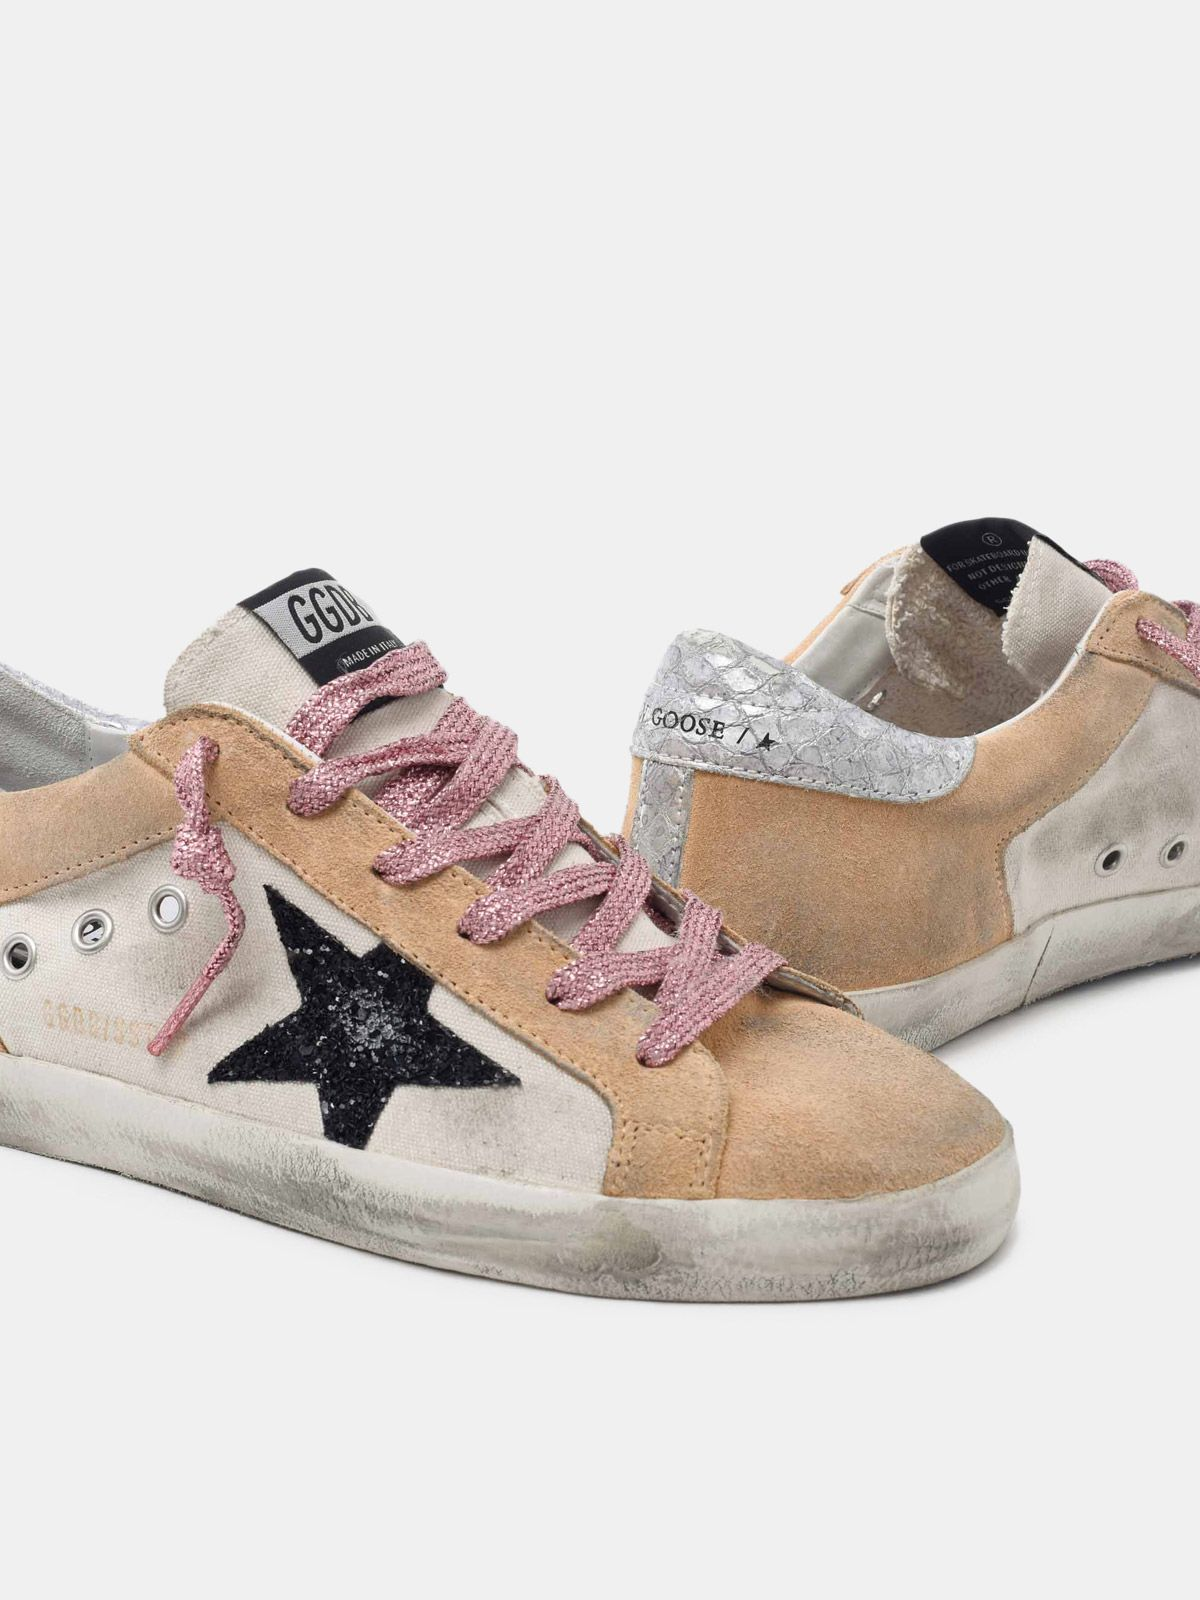 Golden Goose - Super-Star sneakers in sand-coloured suede with silver heel tab in